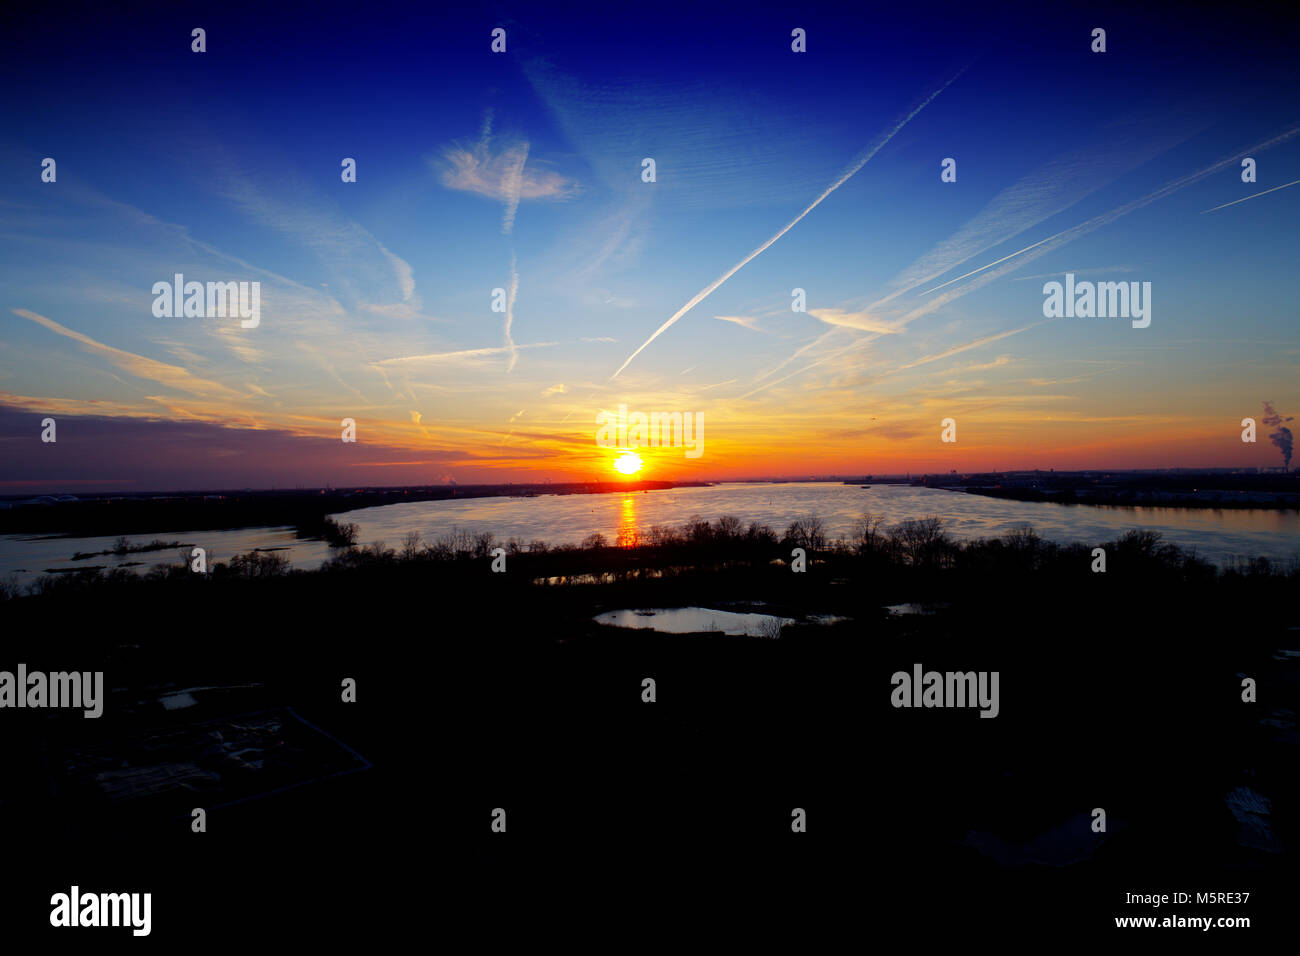 Aerial View of Sunset over River - Stock Image